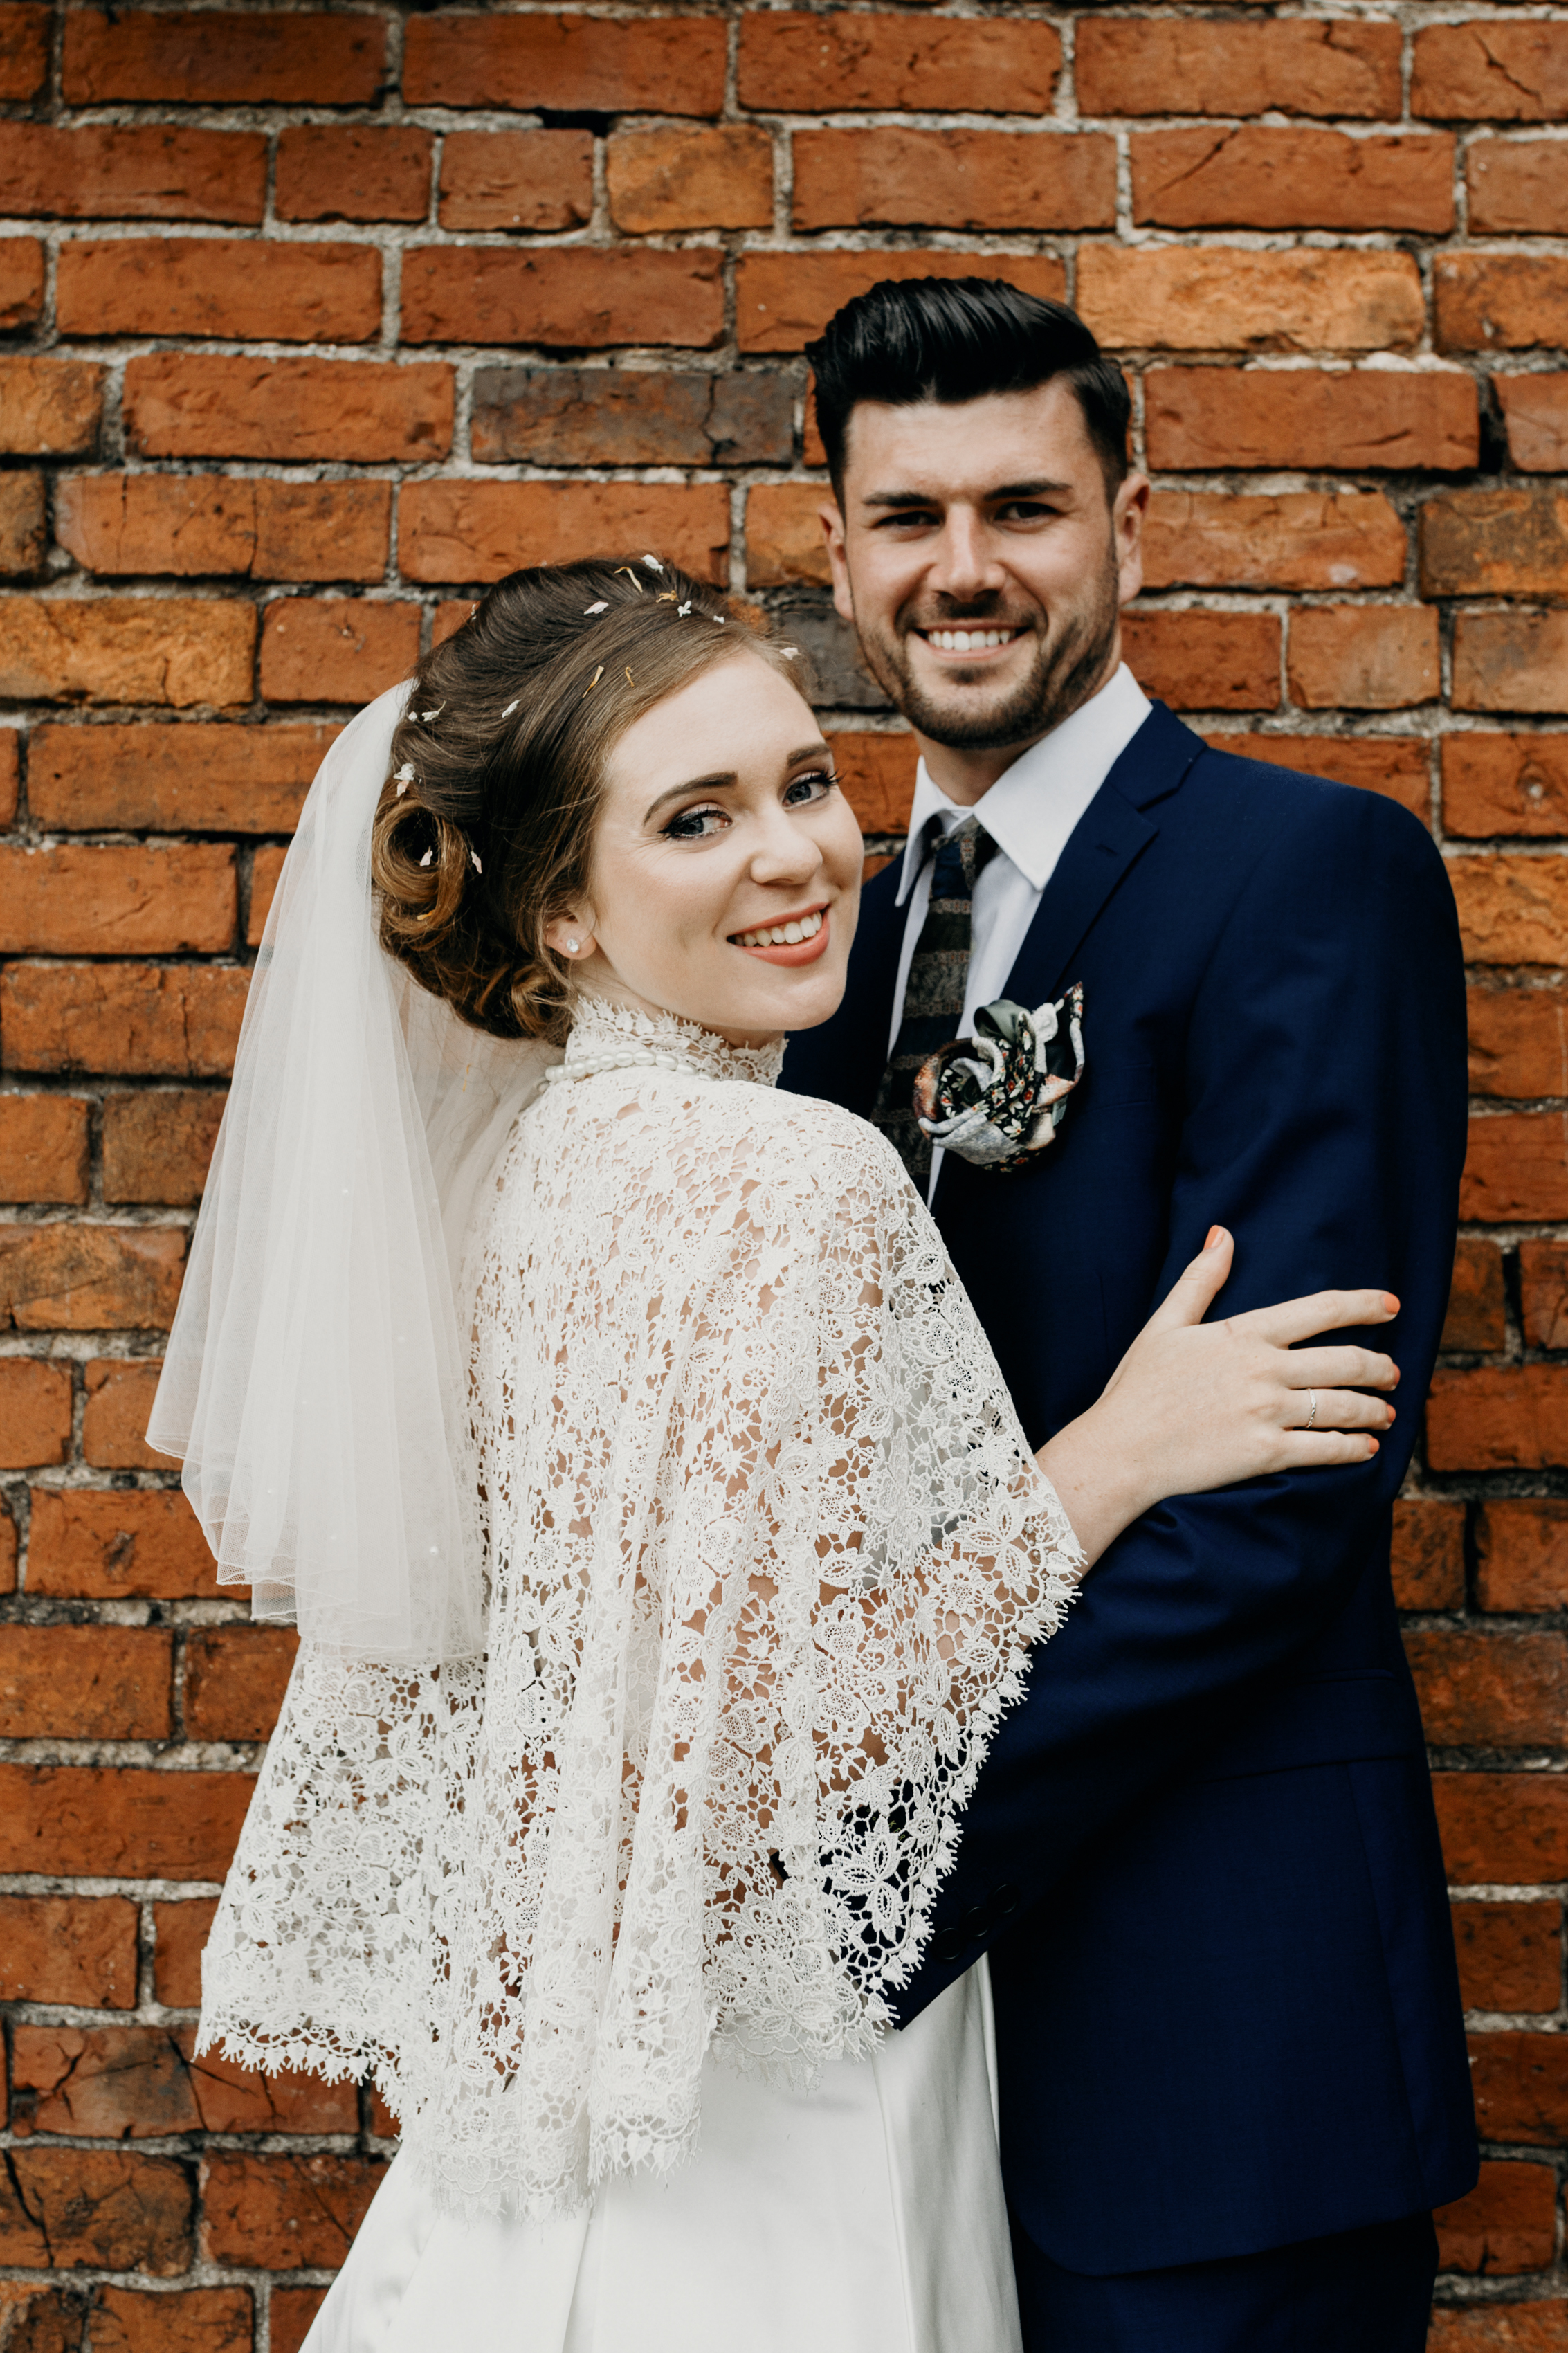 A 1960's Mad Men Inspired Wedding with Modern Vintage Styling